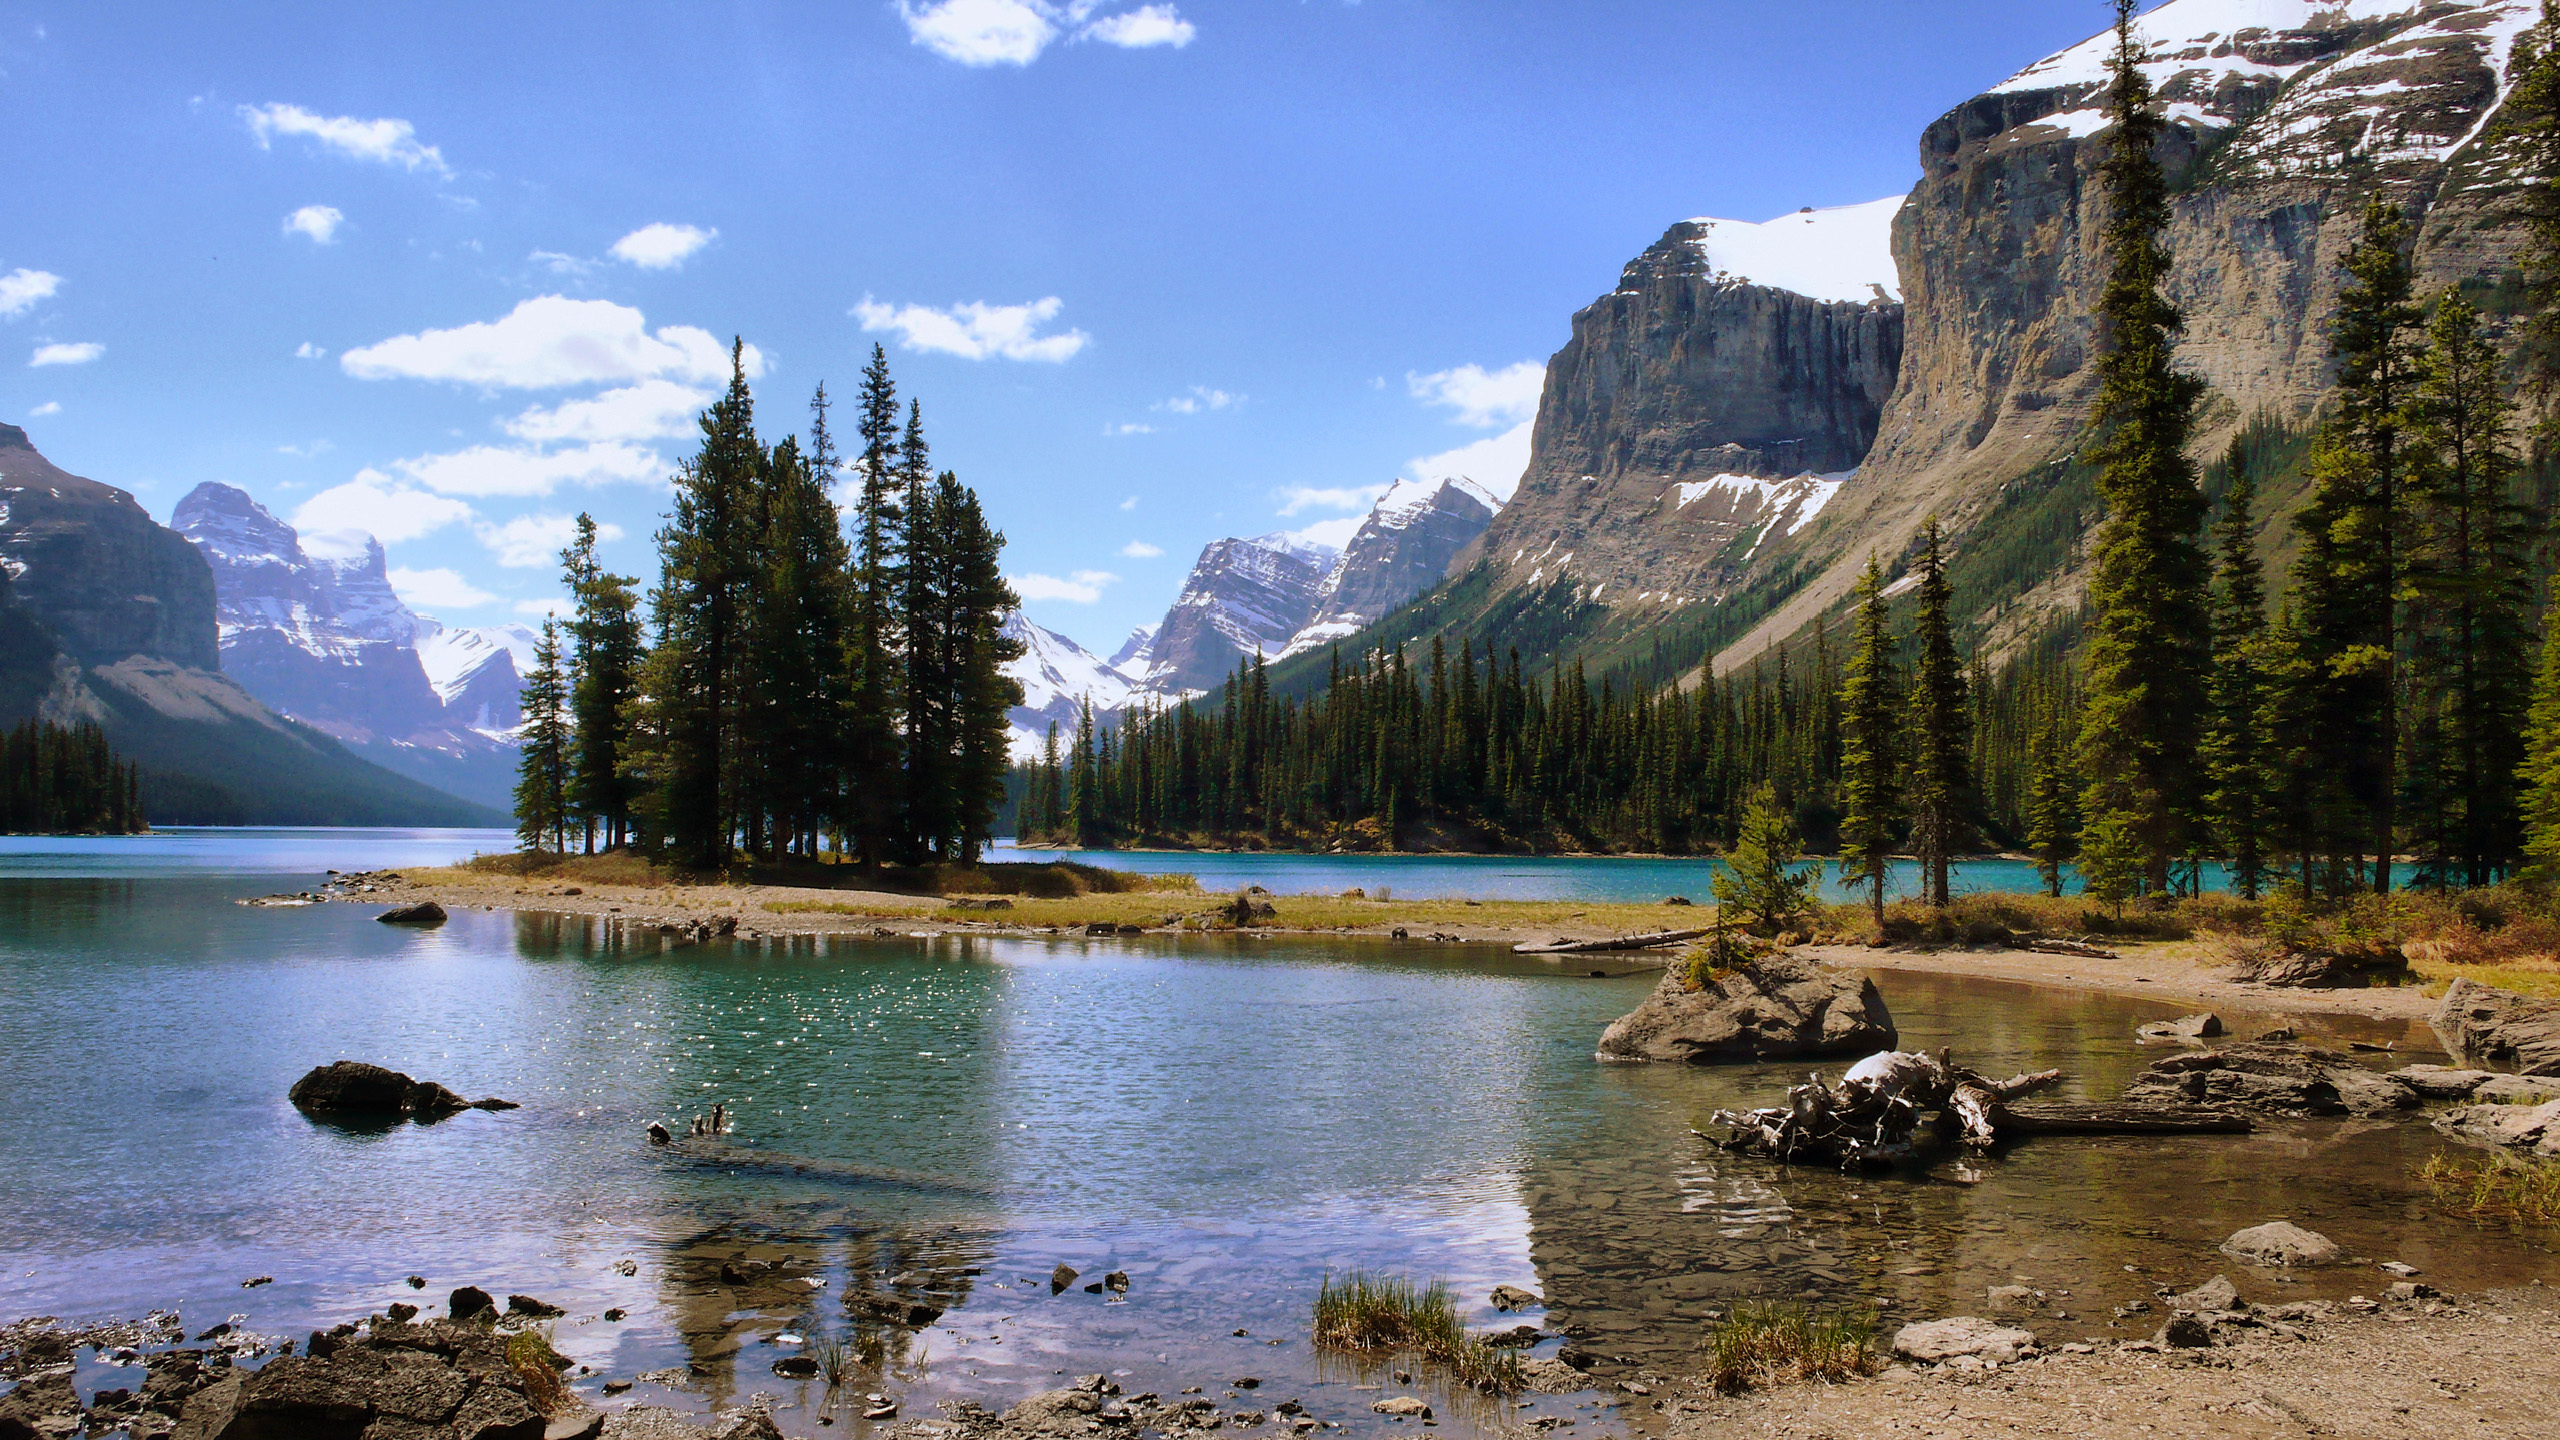 paysage lac montagne fort le Wallpaper   ForWallpapercom 2560x1440